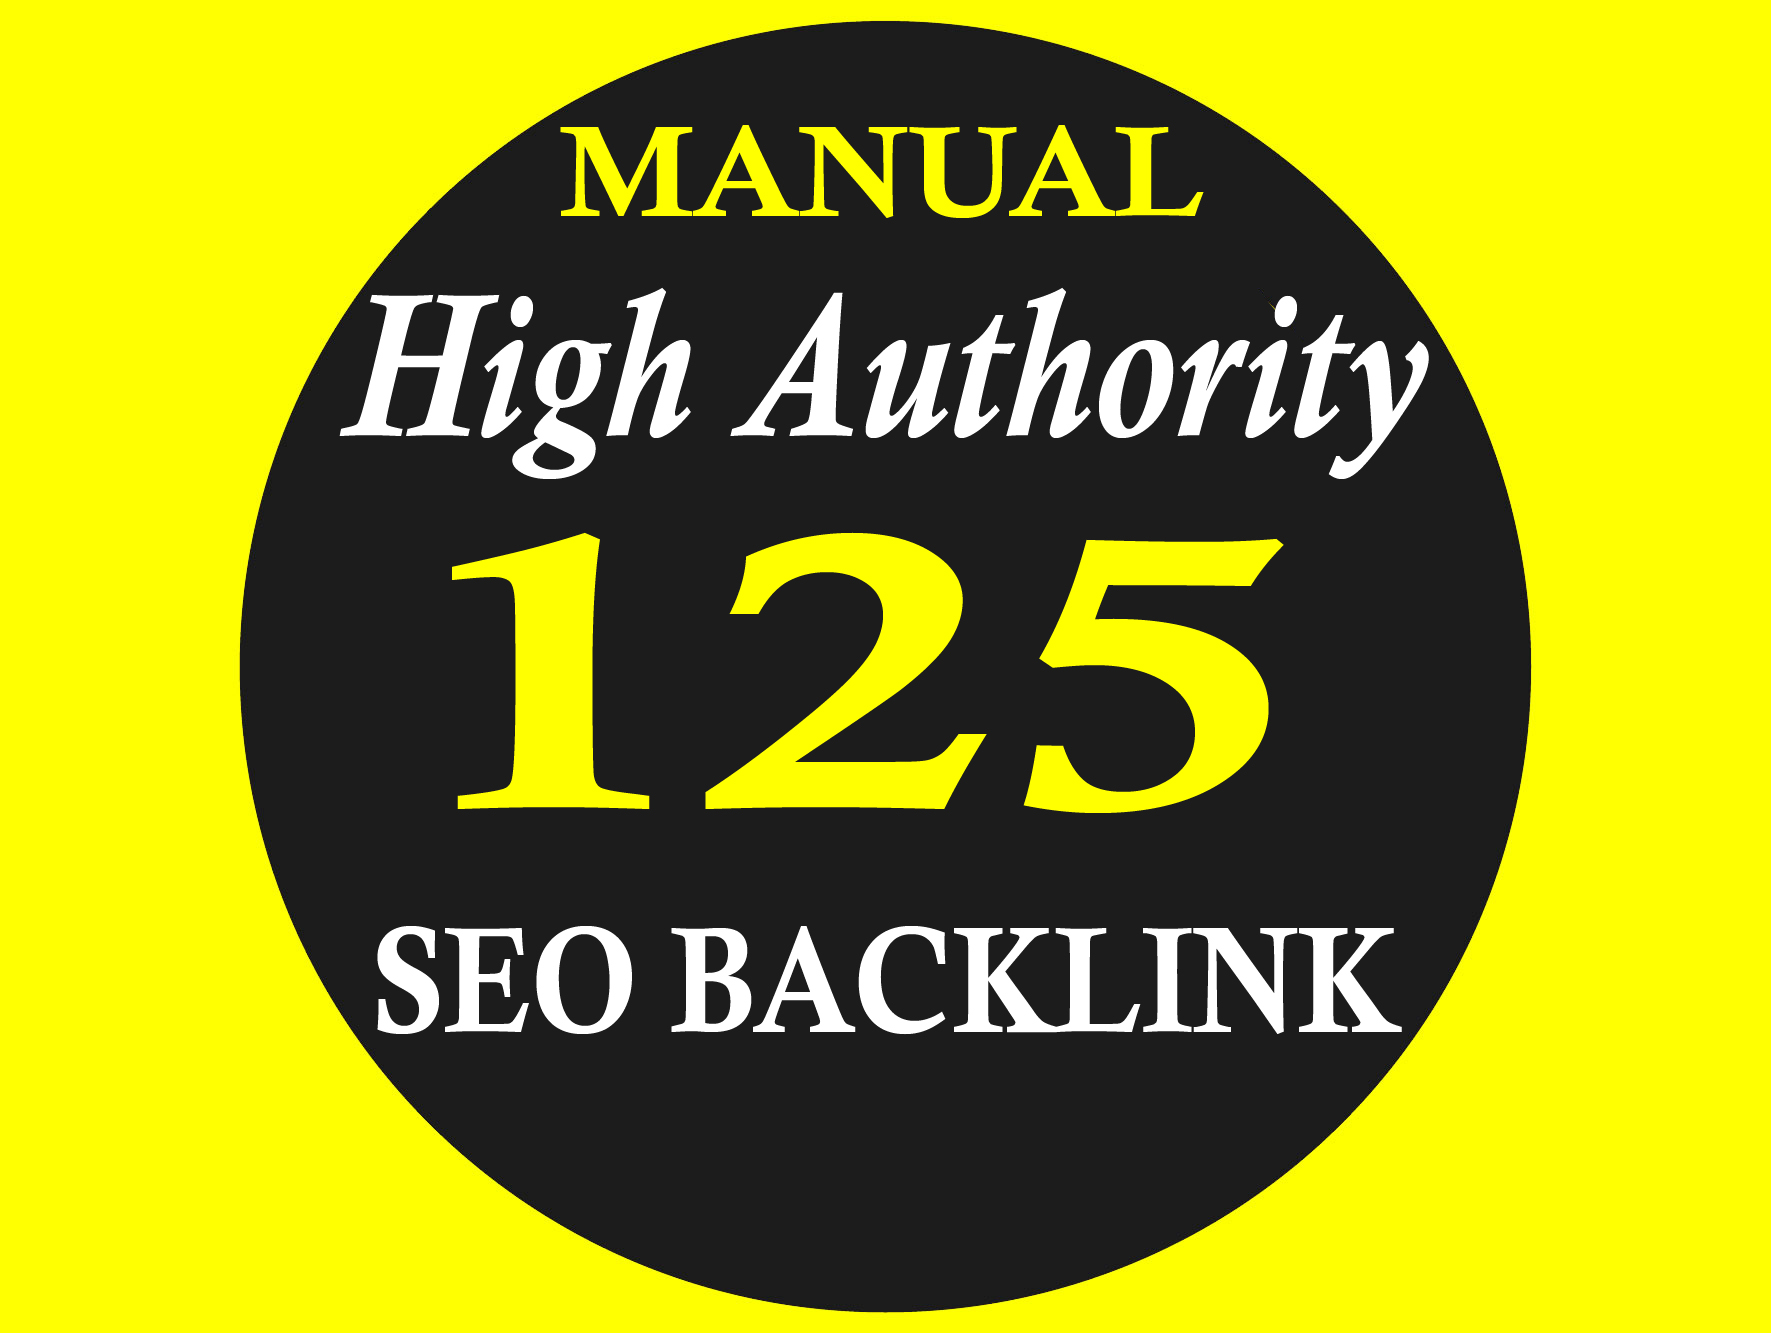 Skyrocket Your Google Ranking With 125 Manual High Authority SEO Back-Link